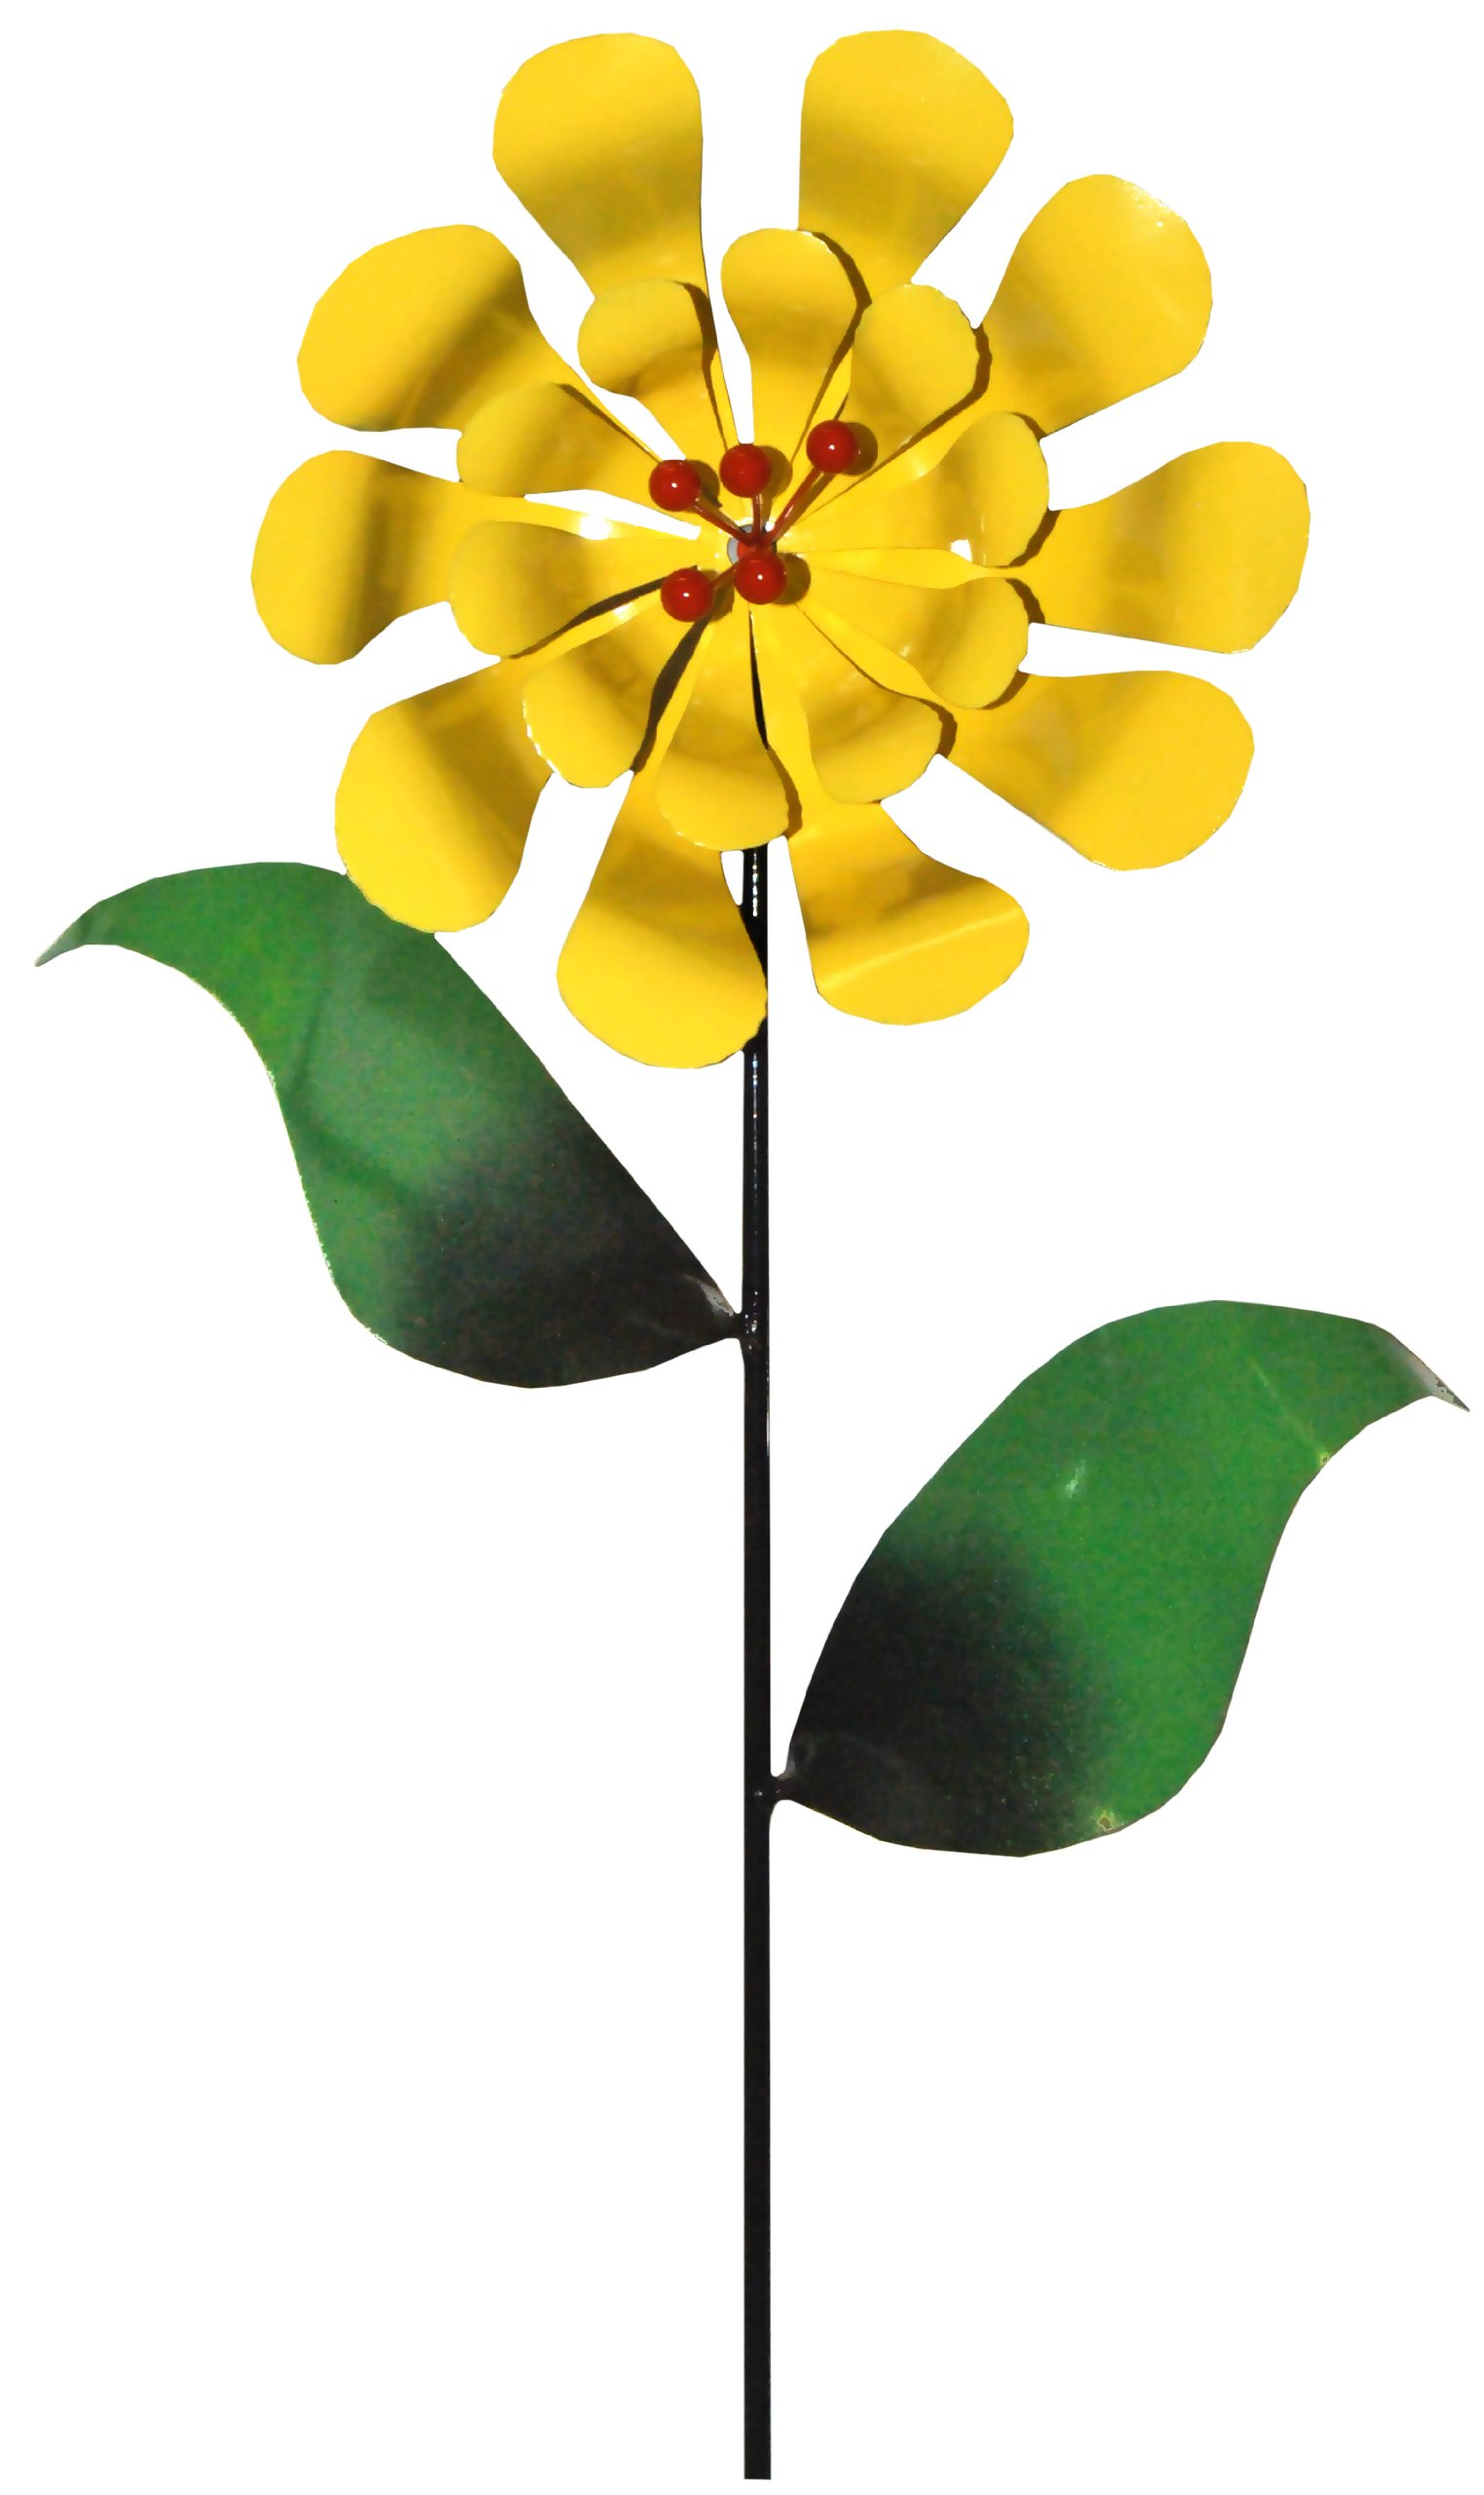 Steven Cooper Metalsmith AFLWR-07-L Artificial Garden Flower on Footed Stake, 5-Feet, Yellow